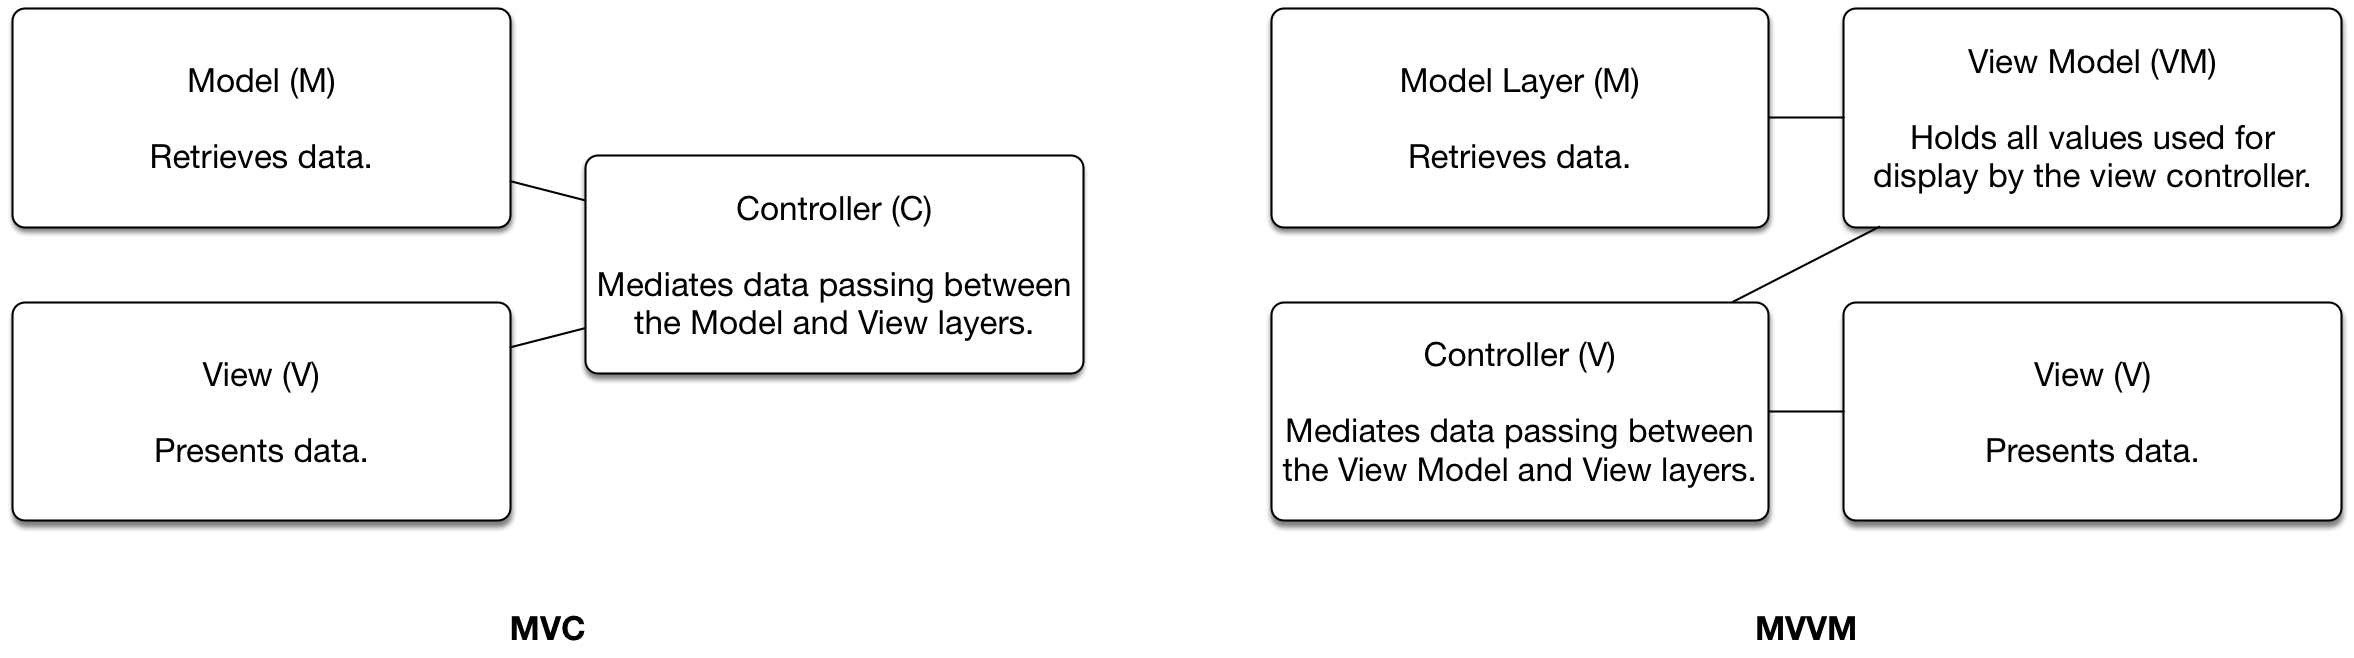 Figure 1: MVC vs MVVM.MVVM is roughly the same as MVC with the addition of a data layer in the form of the View Model that takes over interacting with the Model layer to provide data for presentation by the View layer.